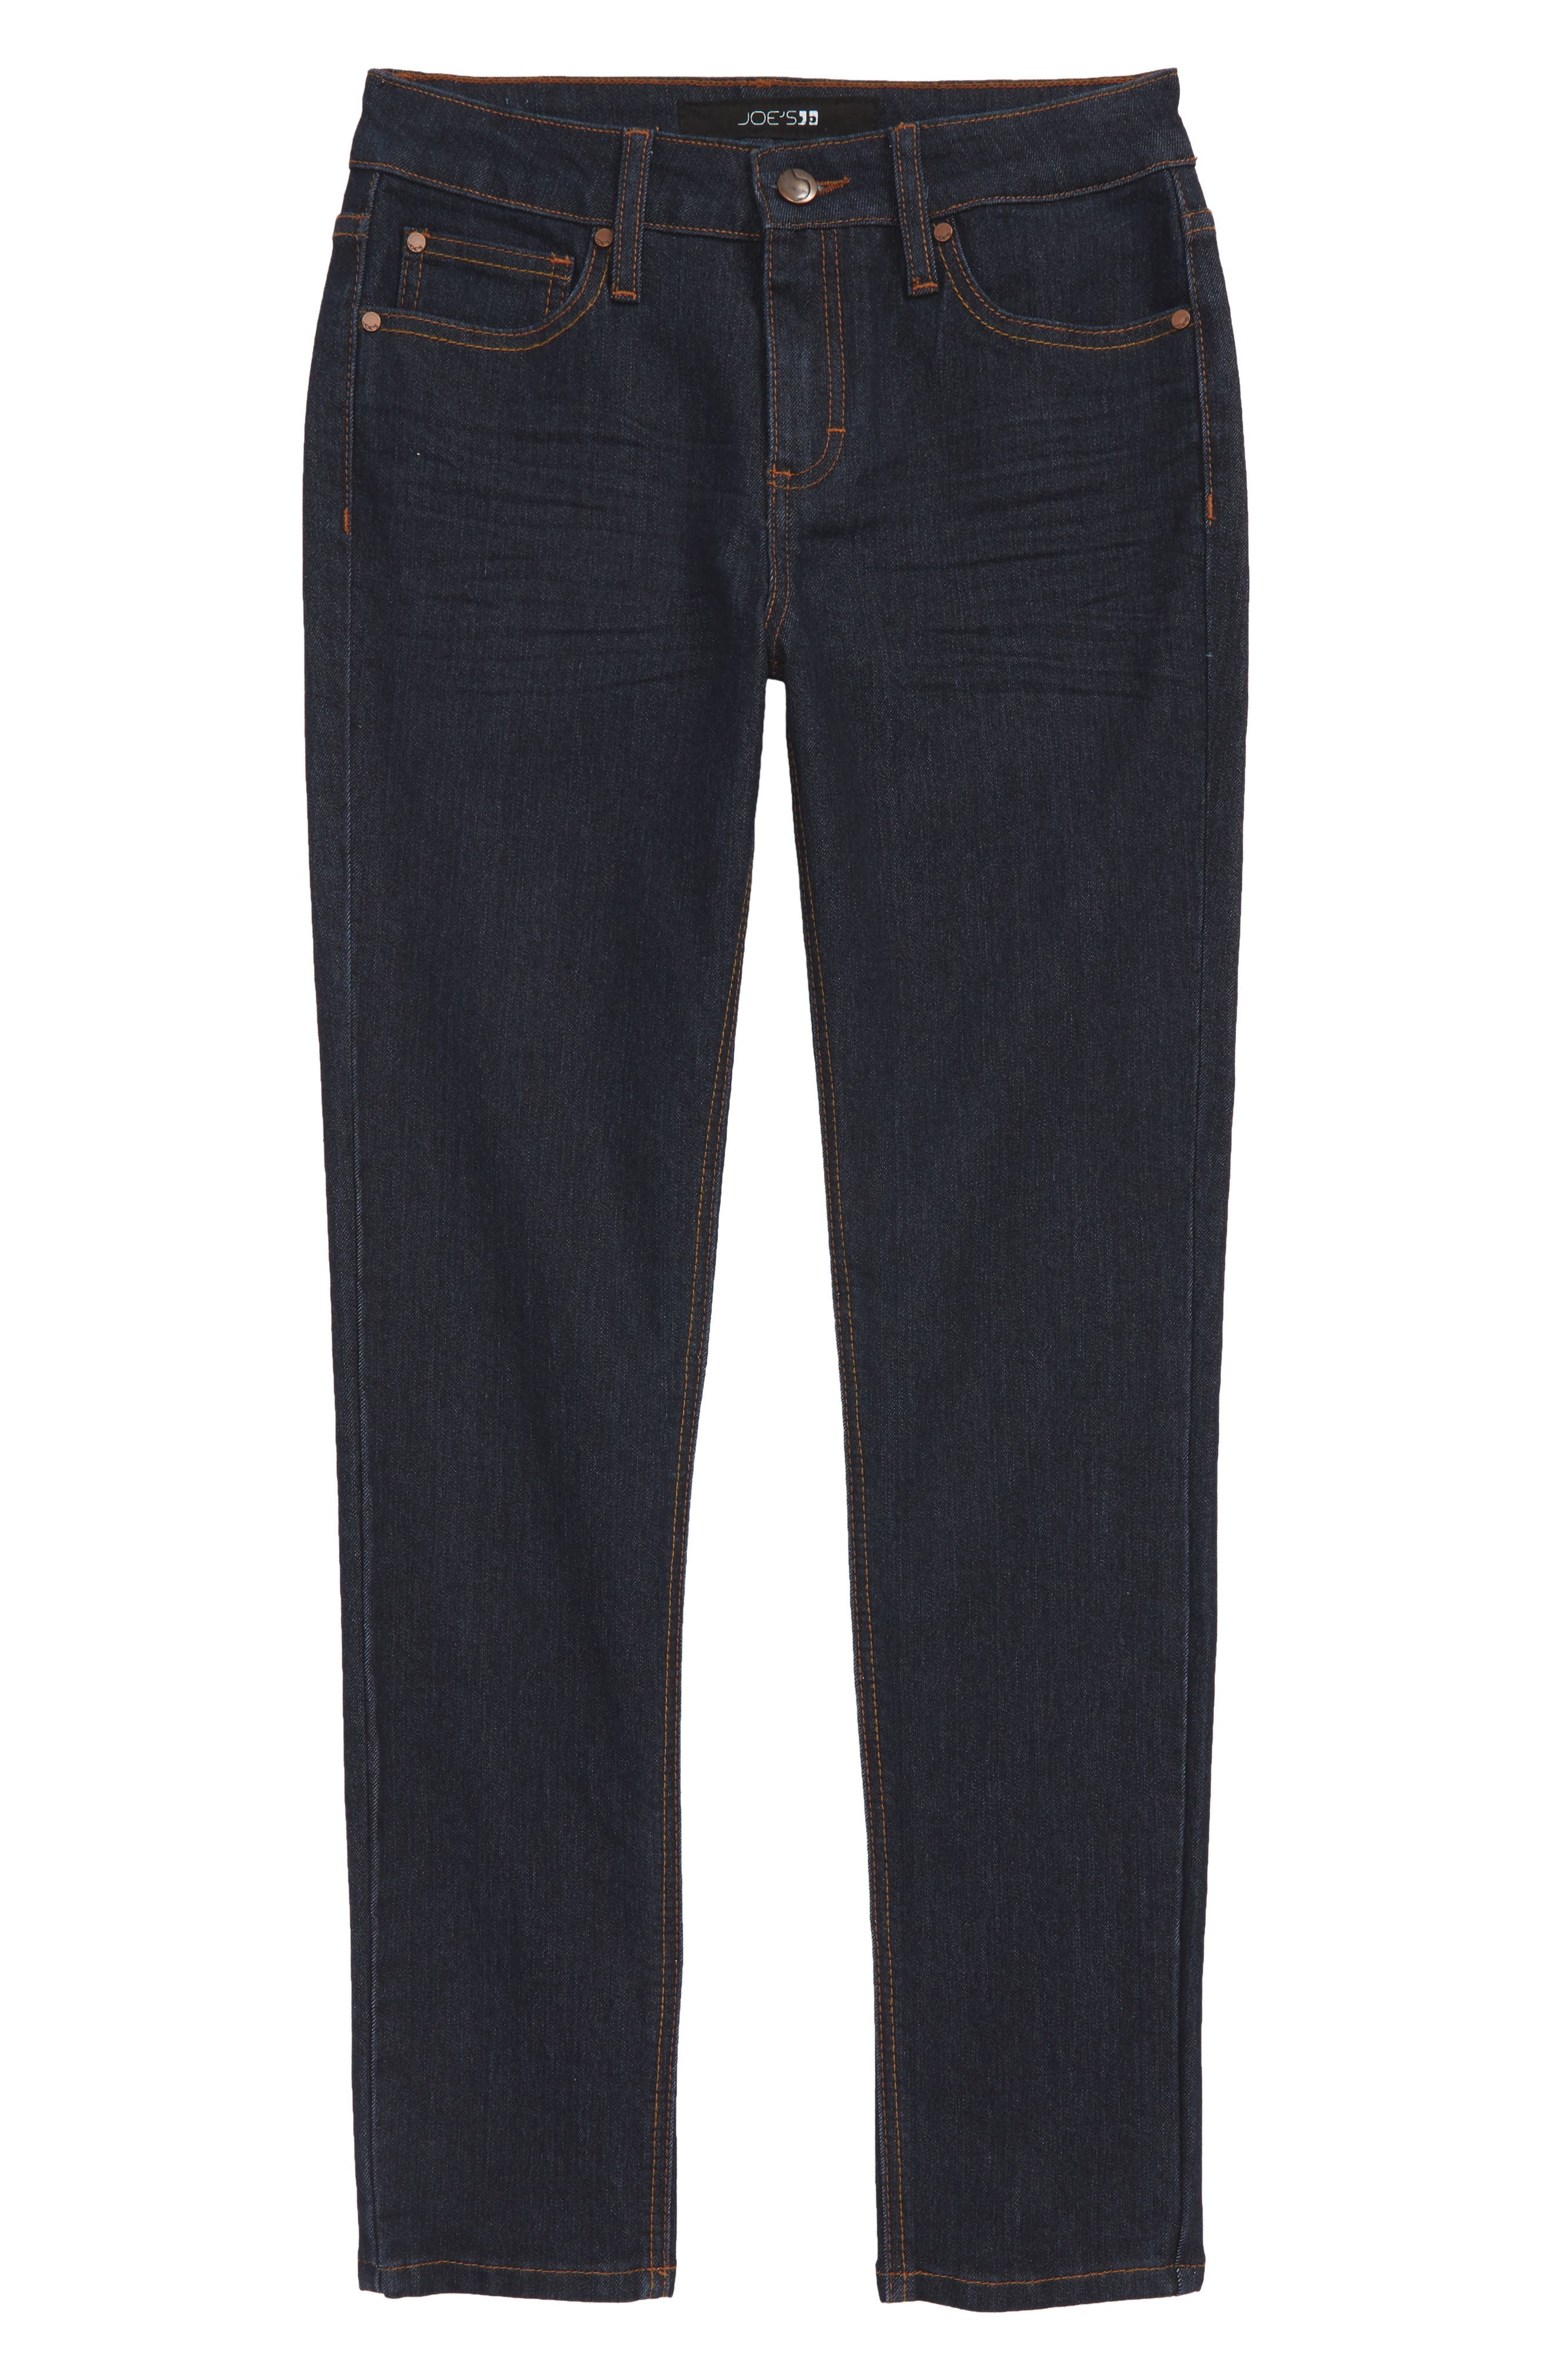 Brixton Straight Leg Stretch Jeans,                         Main,                         color, RINSE